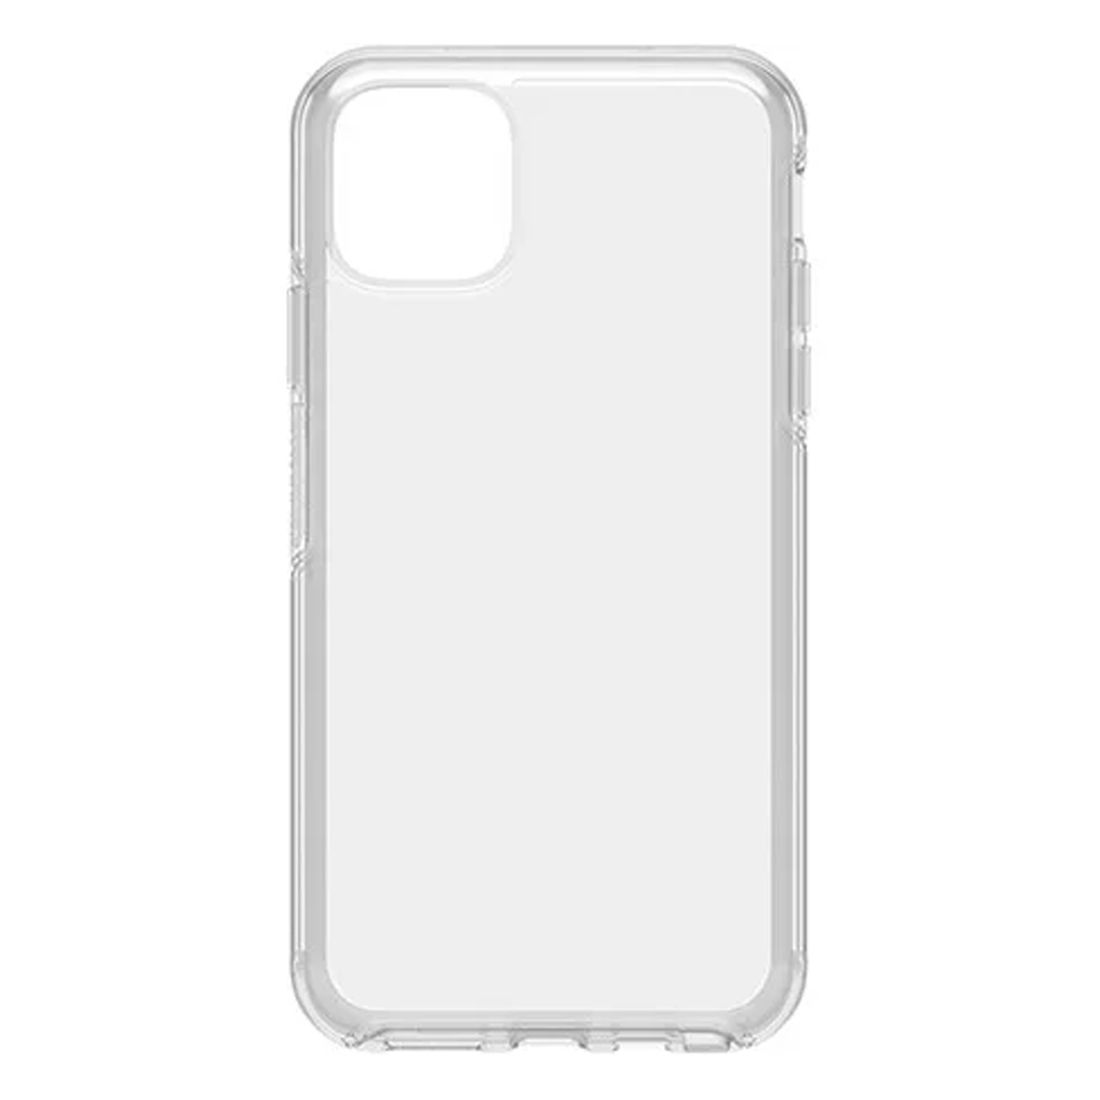 Otterbox Symmetry Clear Case for Apple iPhone 11 Pro Max - Clear